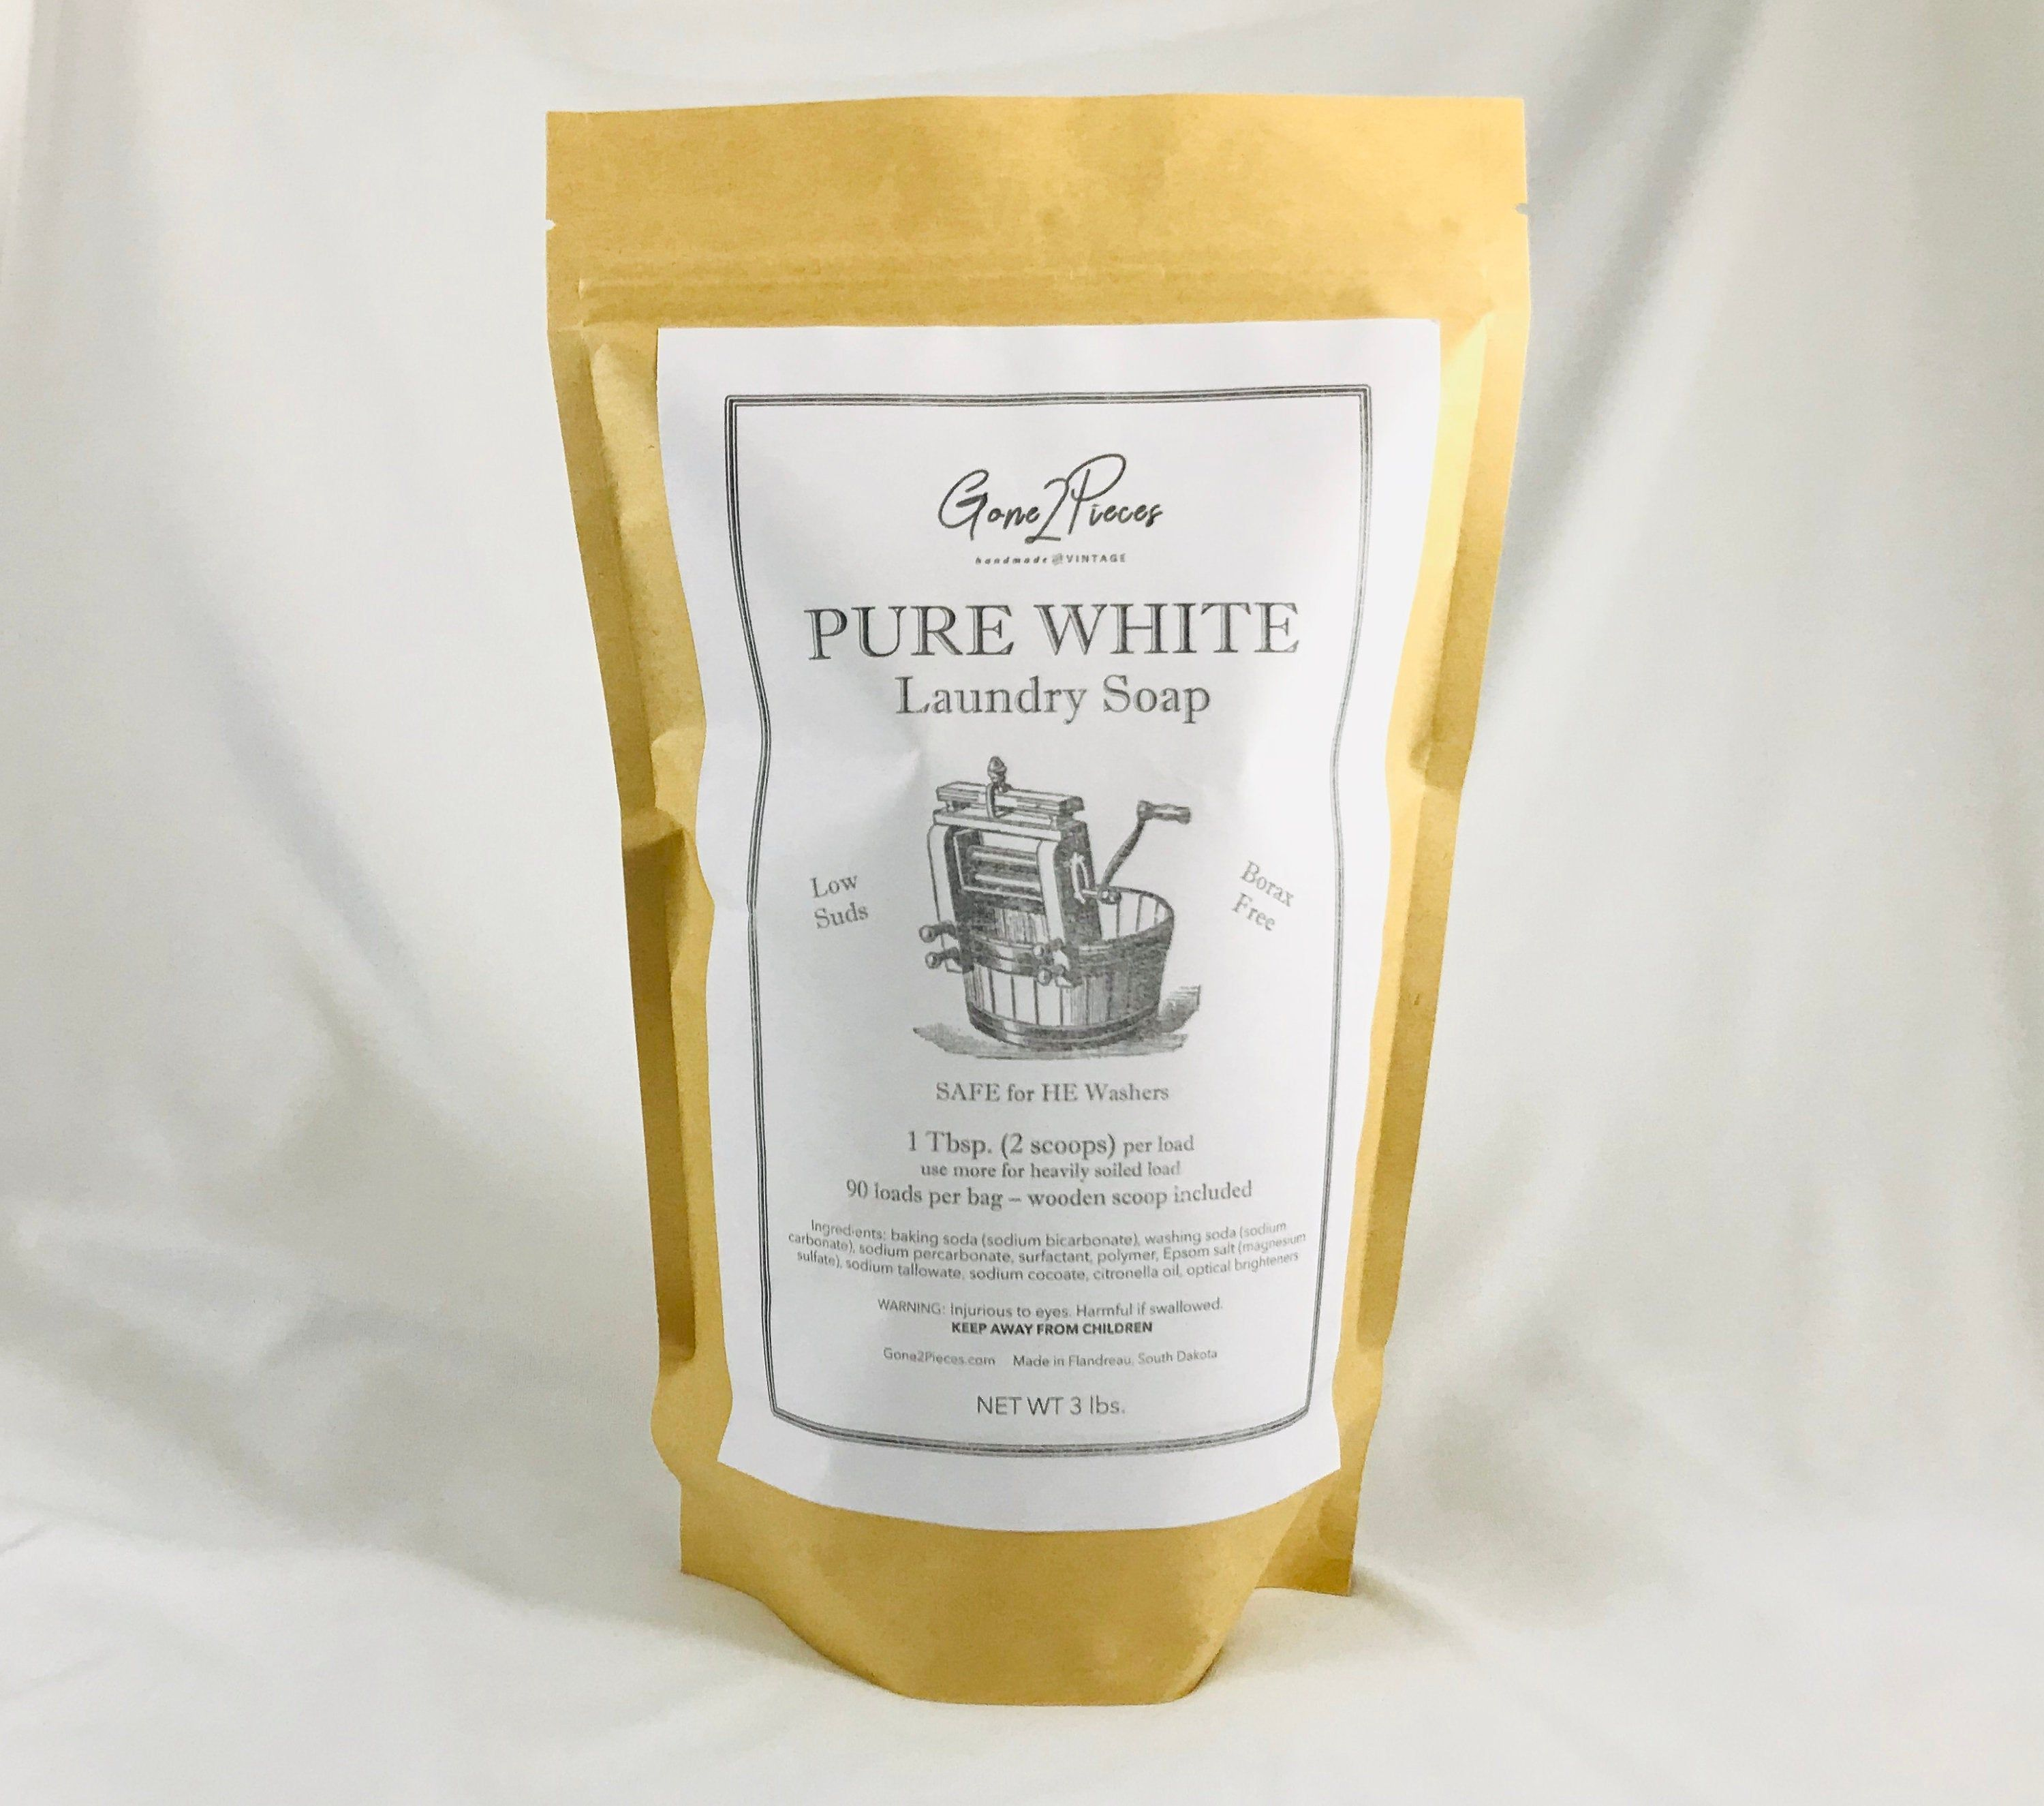 Pure White Laundry Soap 3 Lb Includes Wooden Scoop Etsy In 2020